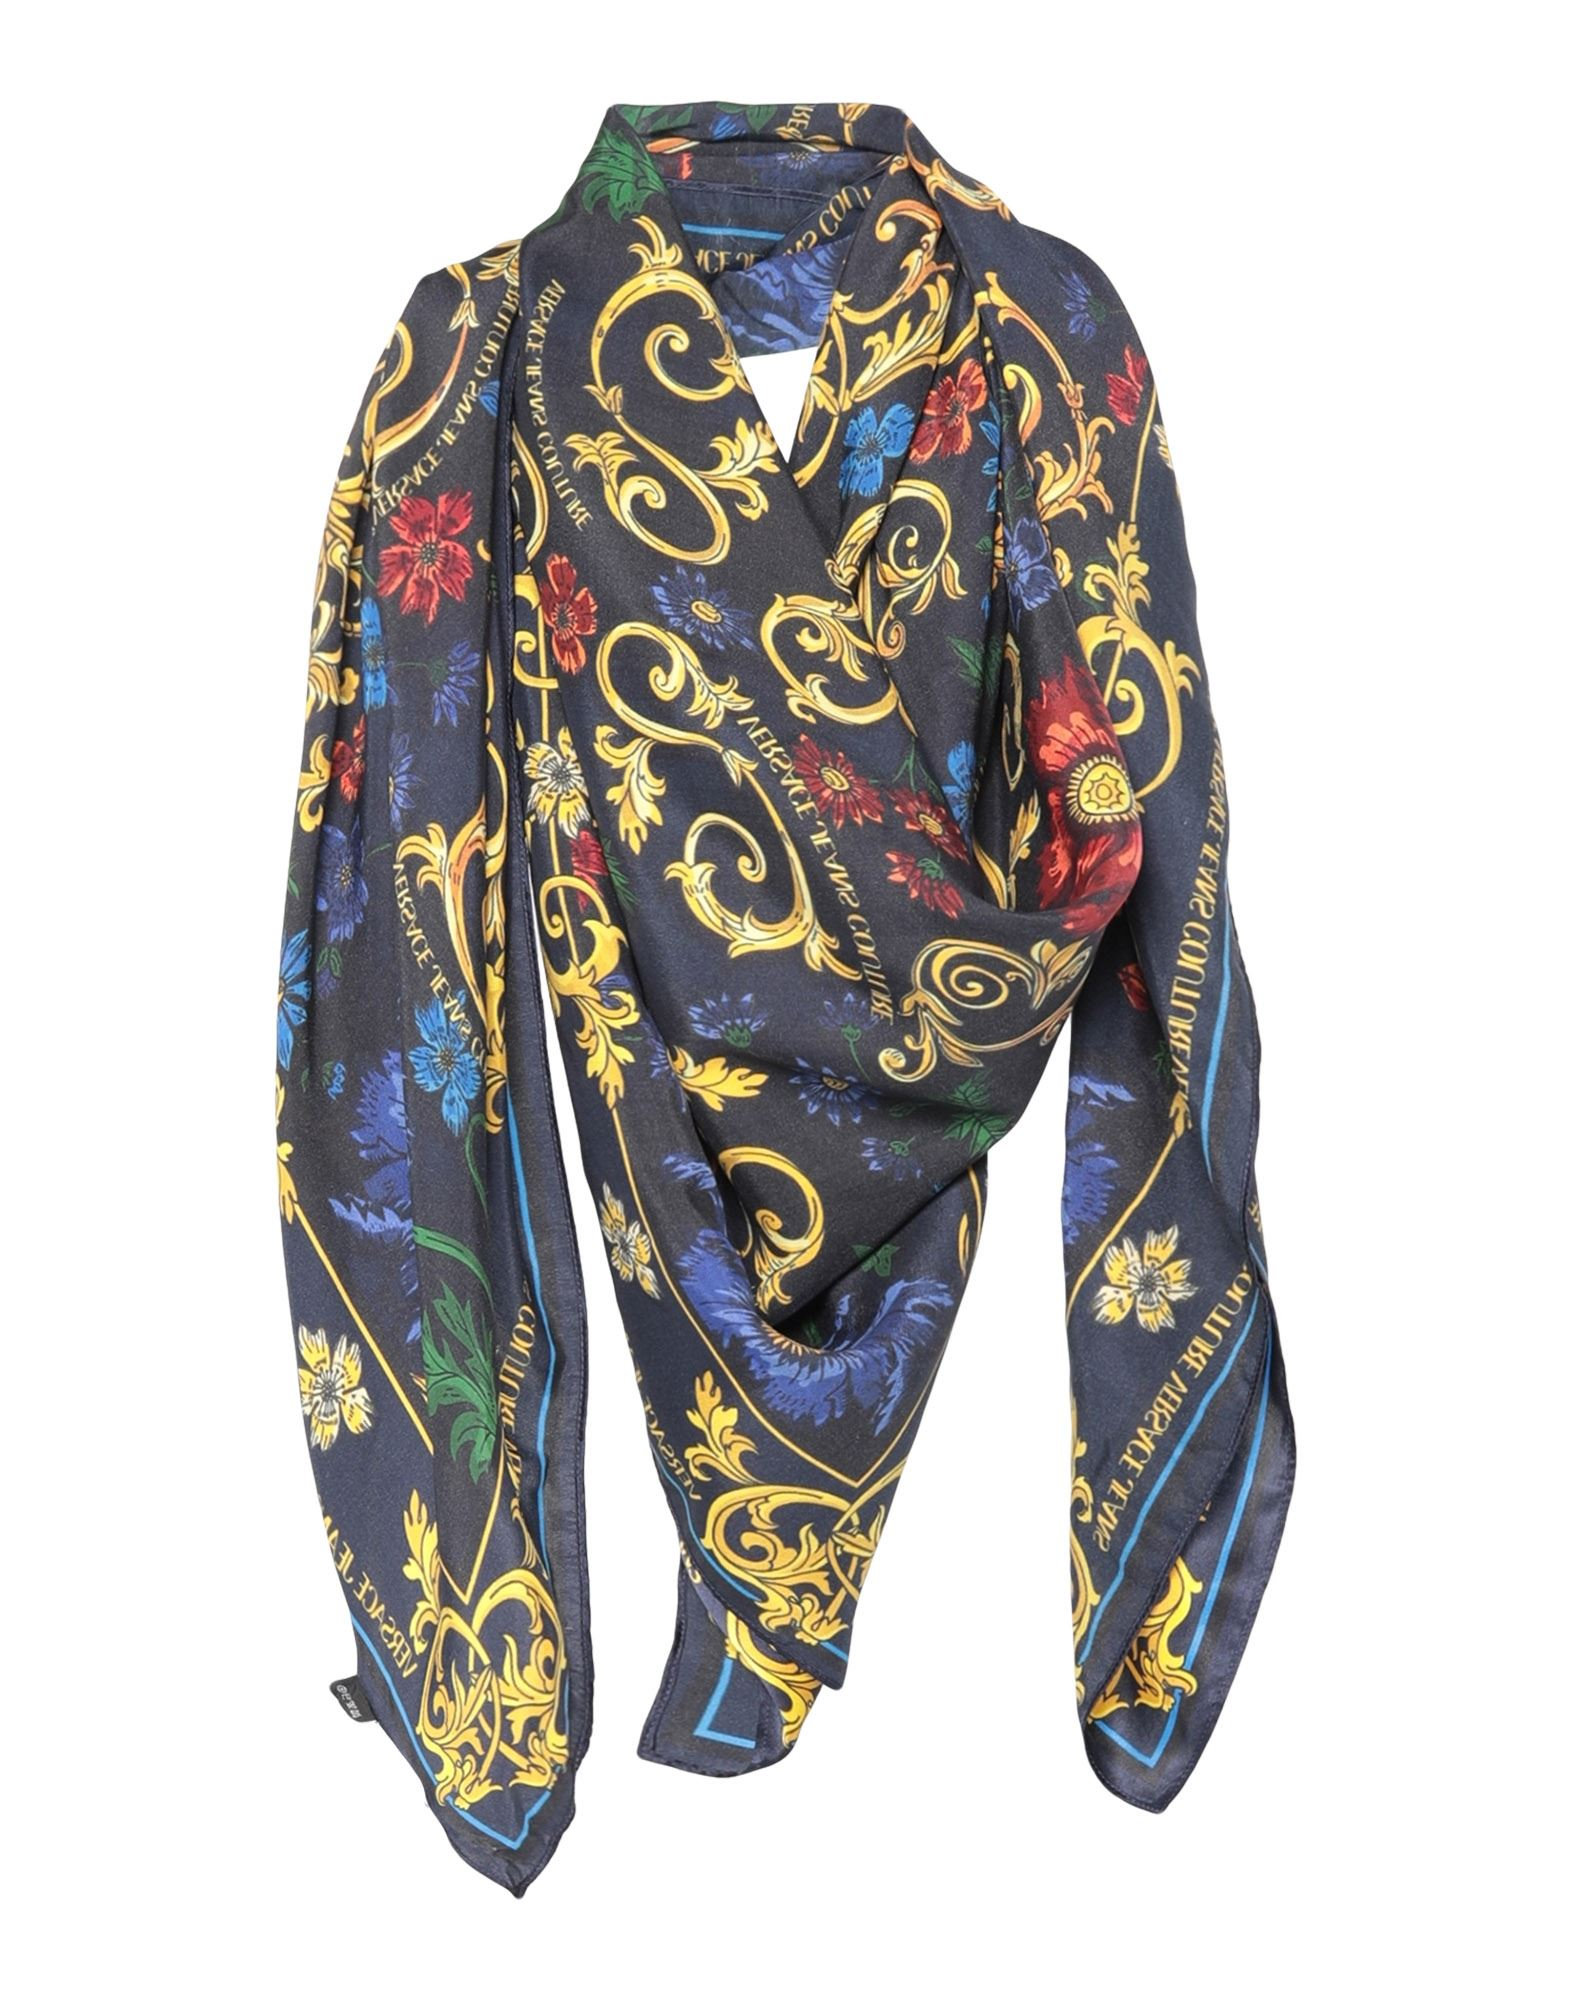 versace gianni versace couture VERSACE JEANS COUTURE Шарф